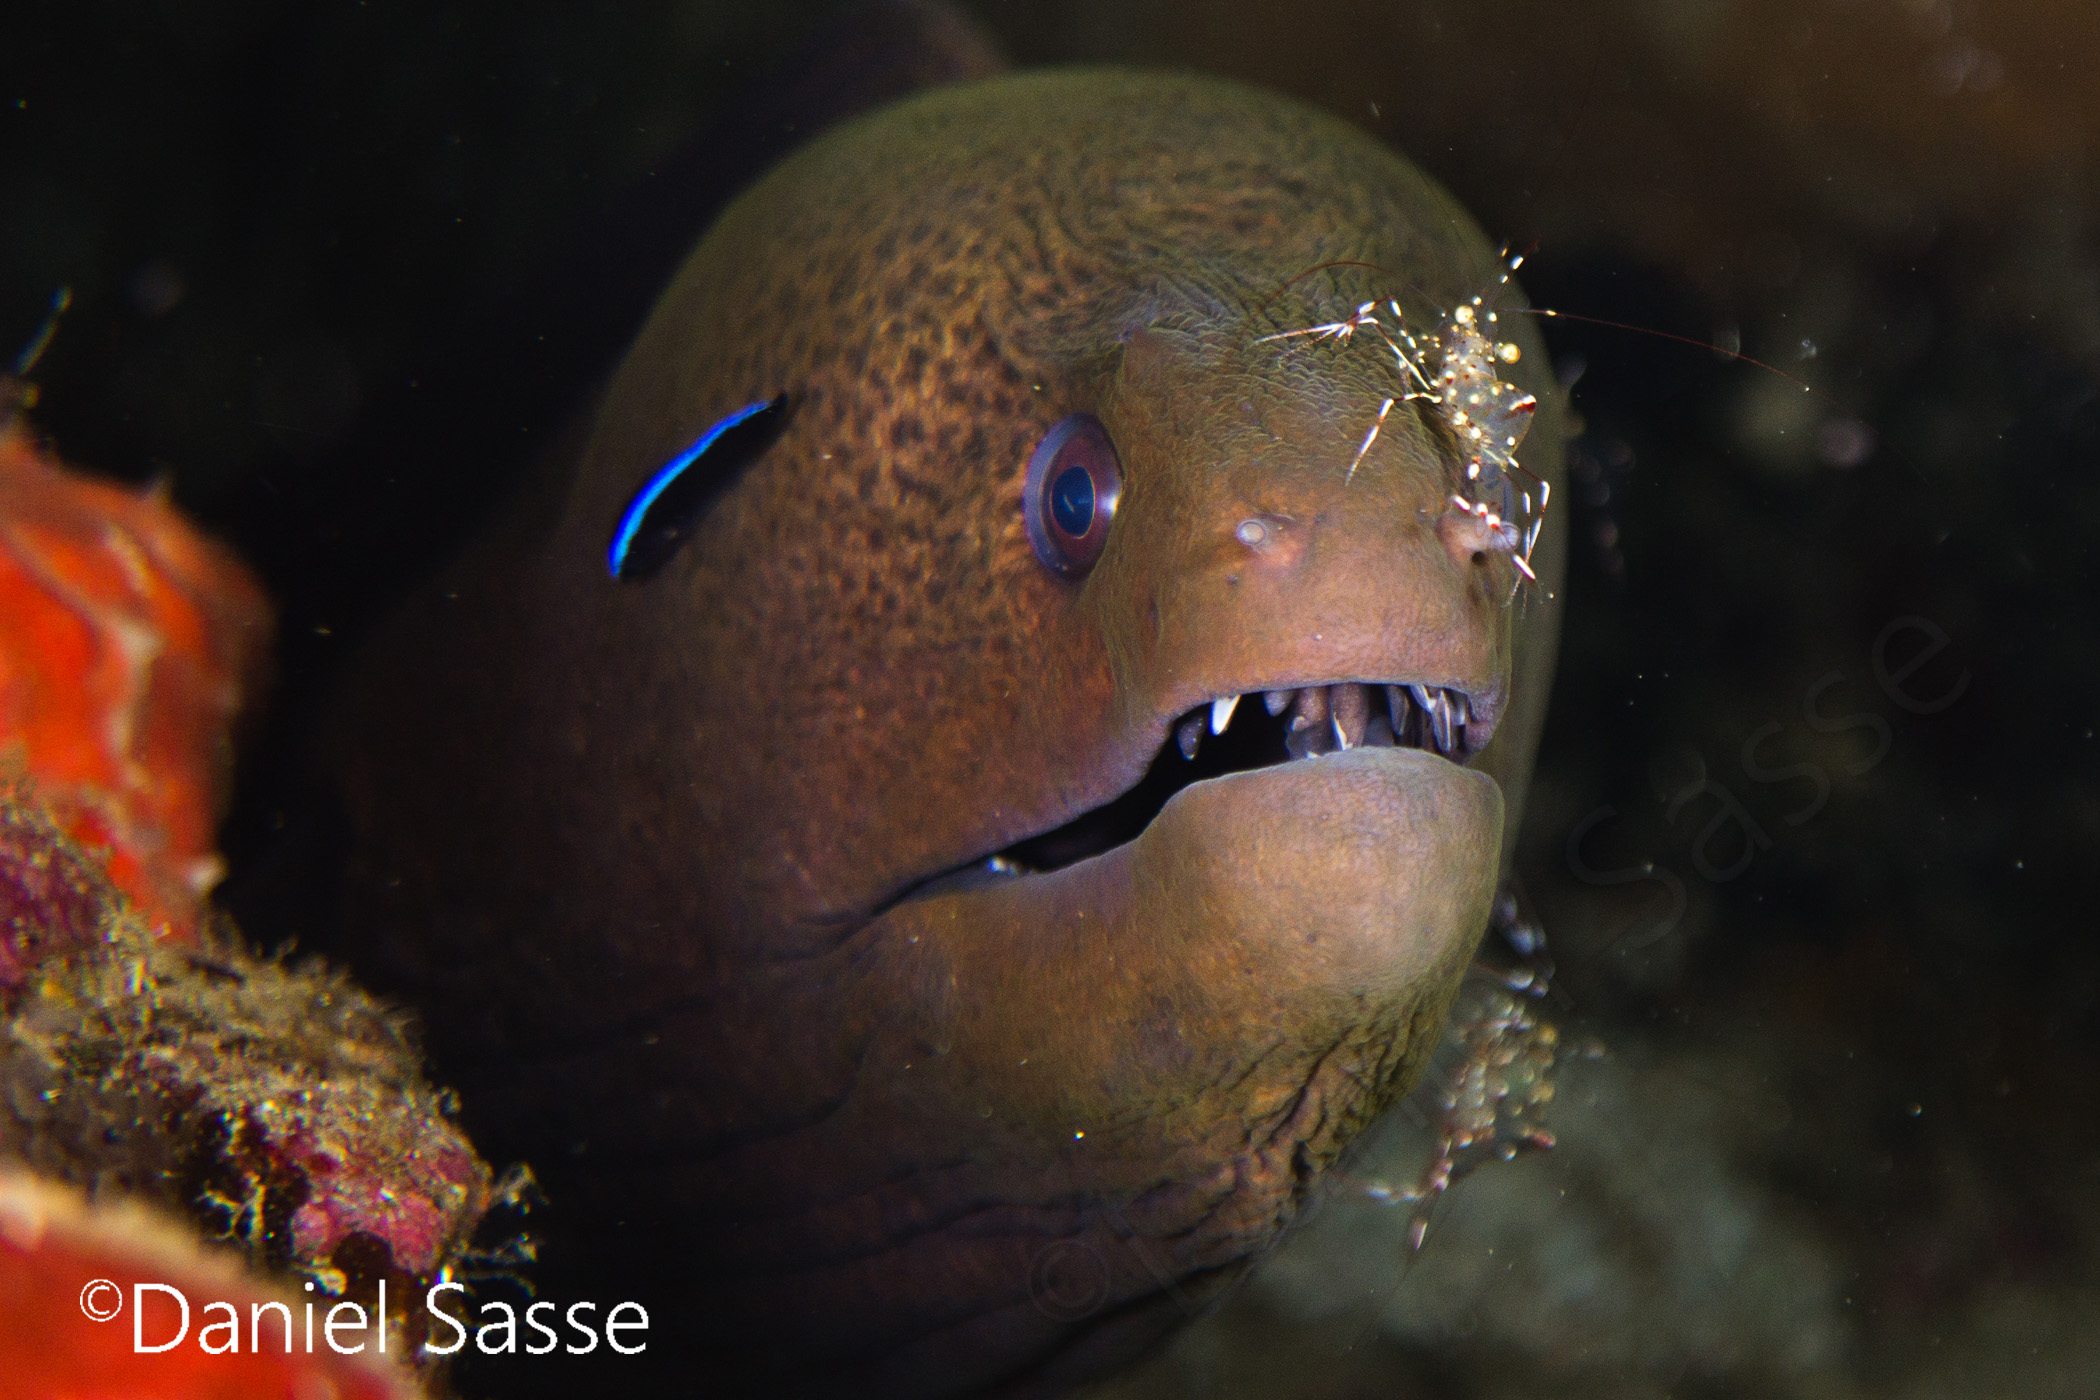 I Spent Many Hours Scuba Diving To Photograph Moray Eels On Cleaning Stations.